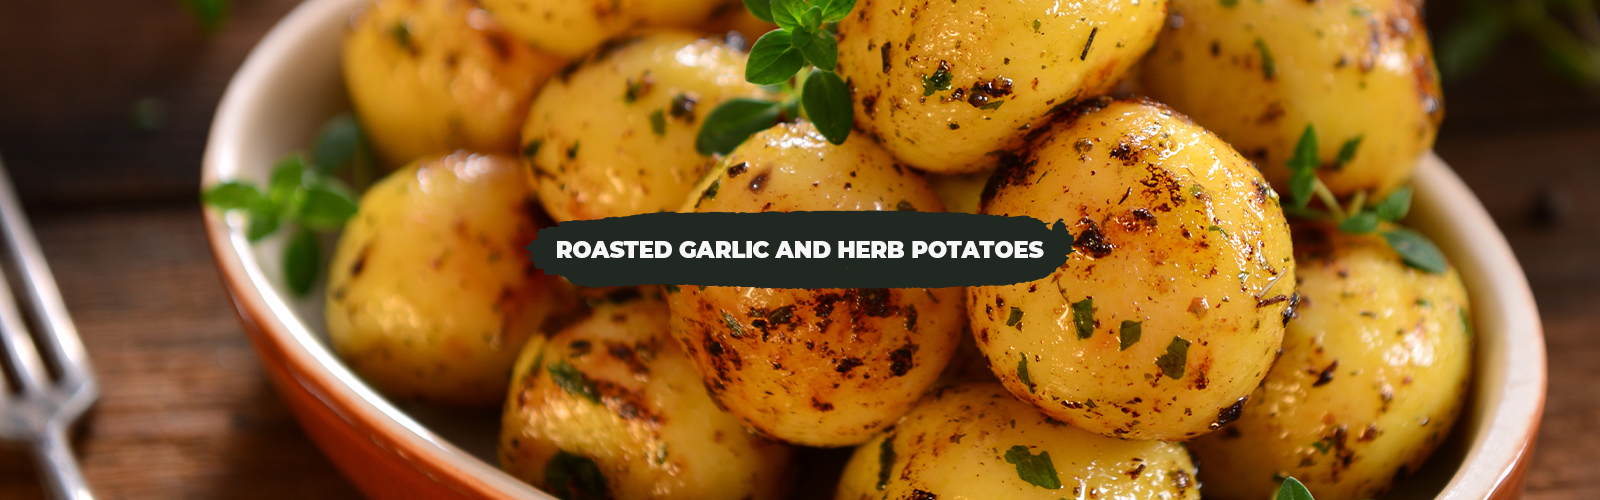 Thermo-Friendly Roasted Garlic and Herb Potatoes